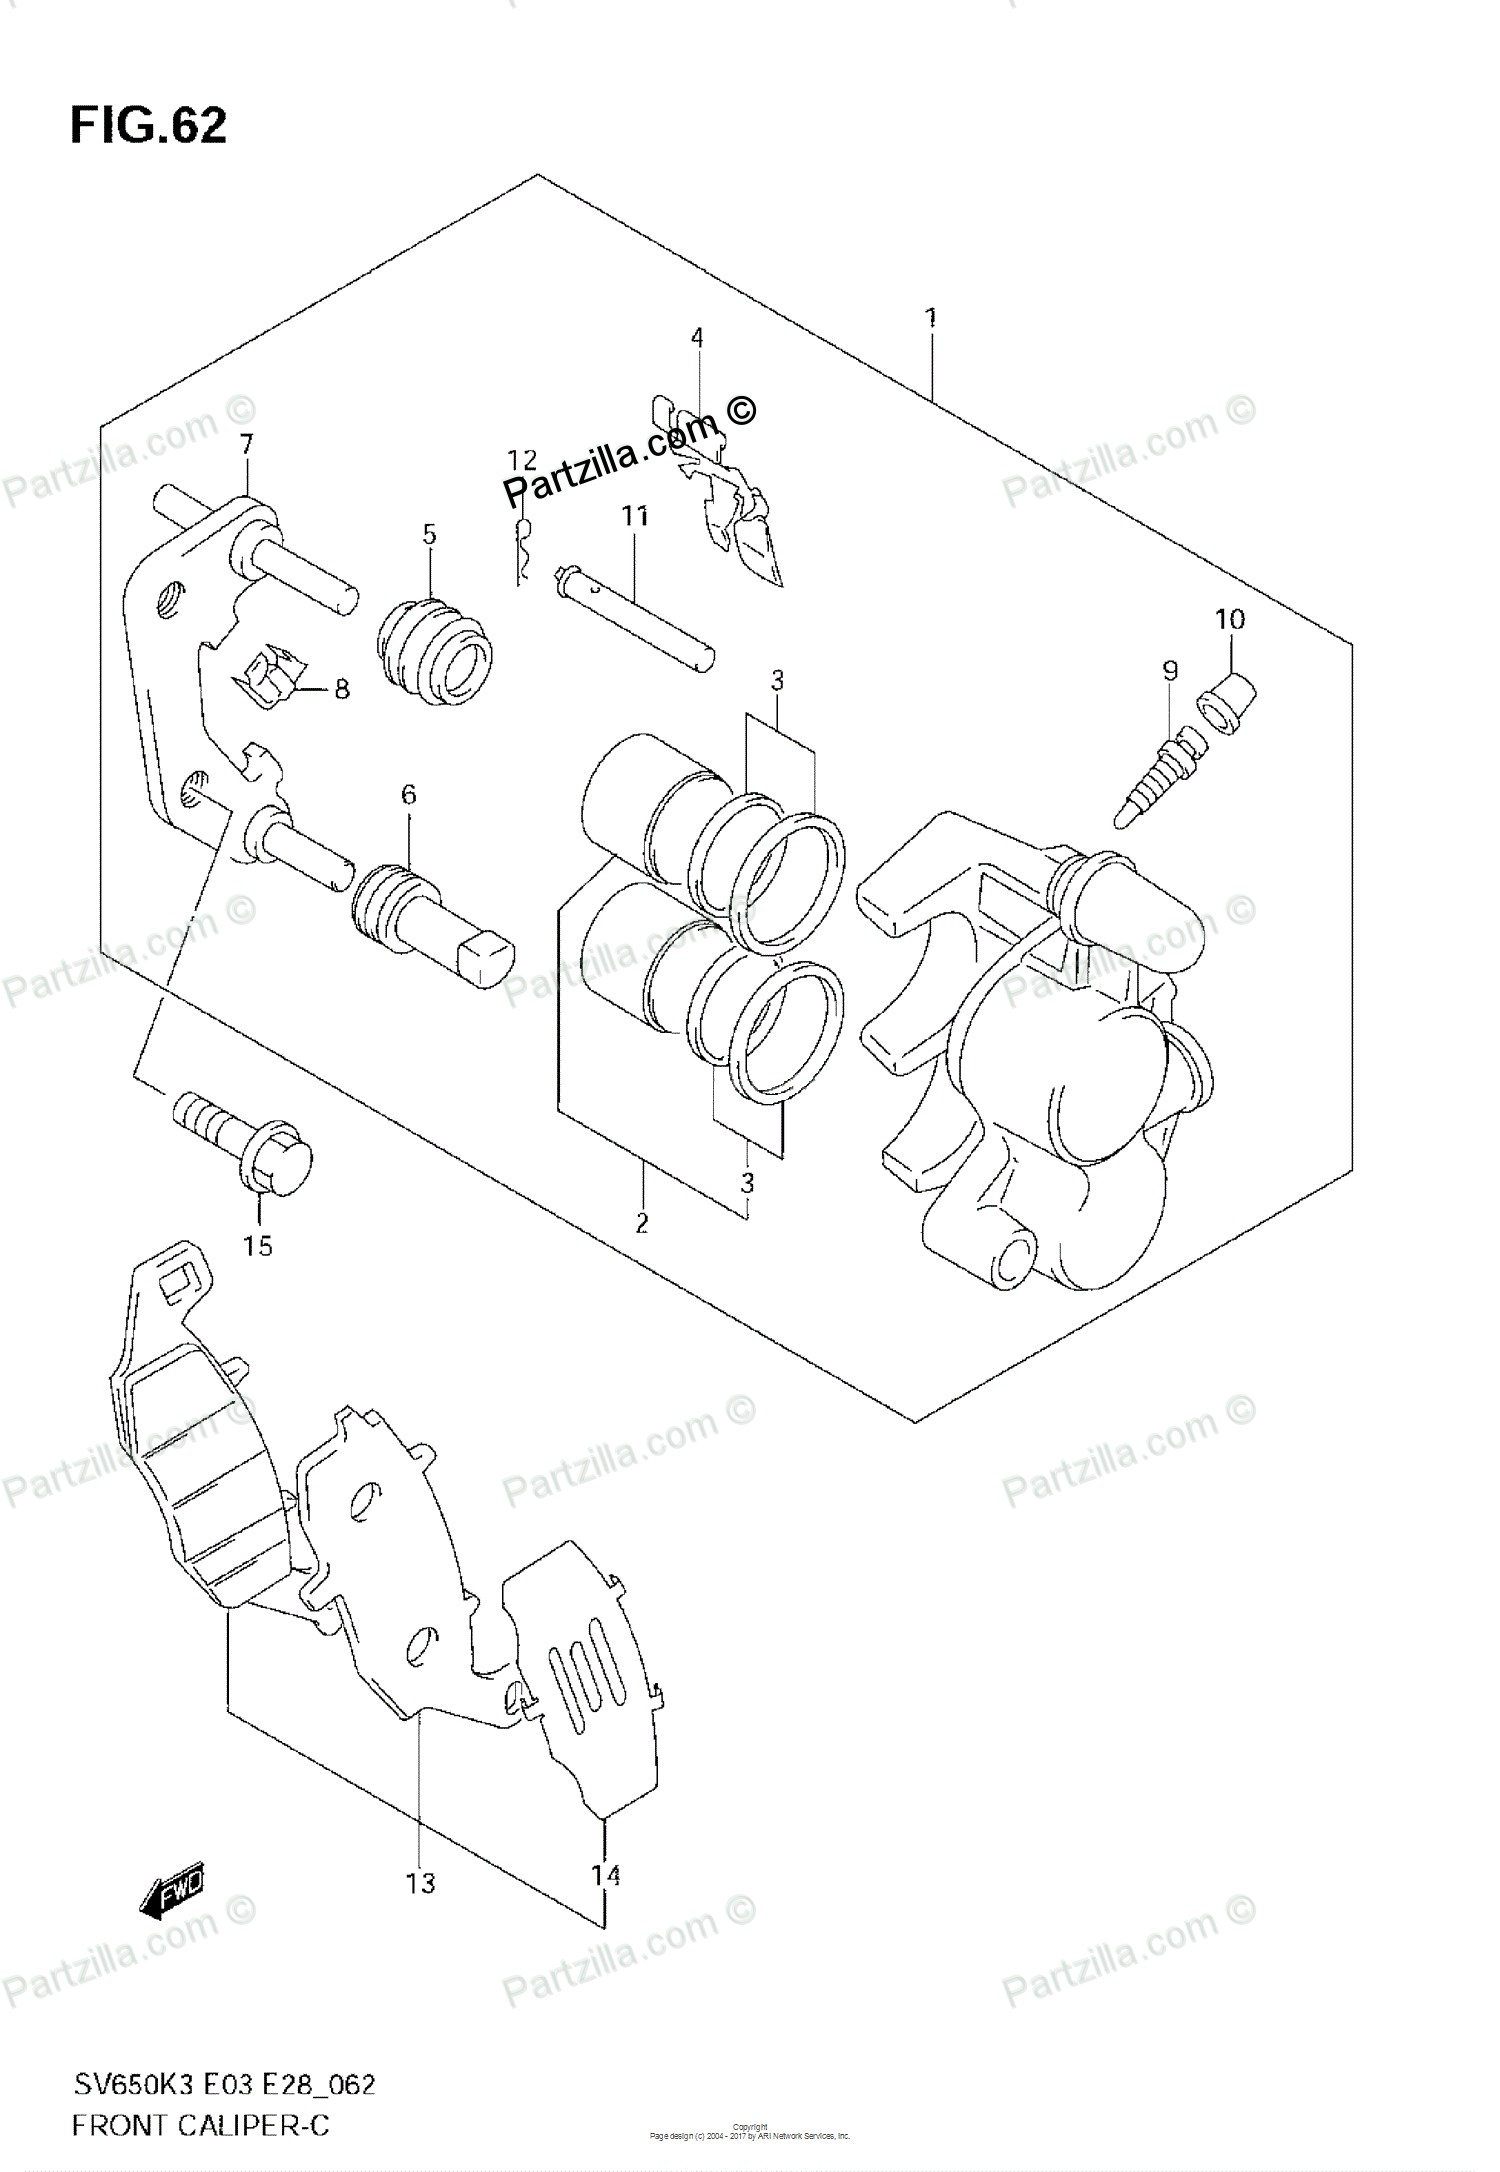 Brake Caliper Parts Diagram ] Saab Bolt Hex with Con Wa